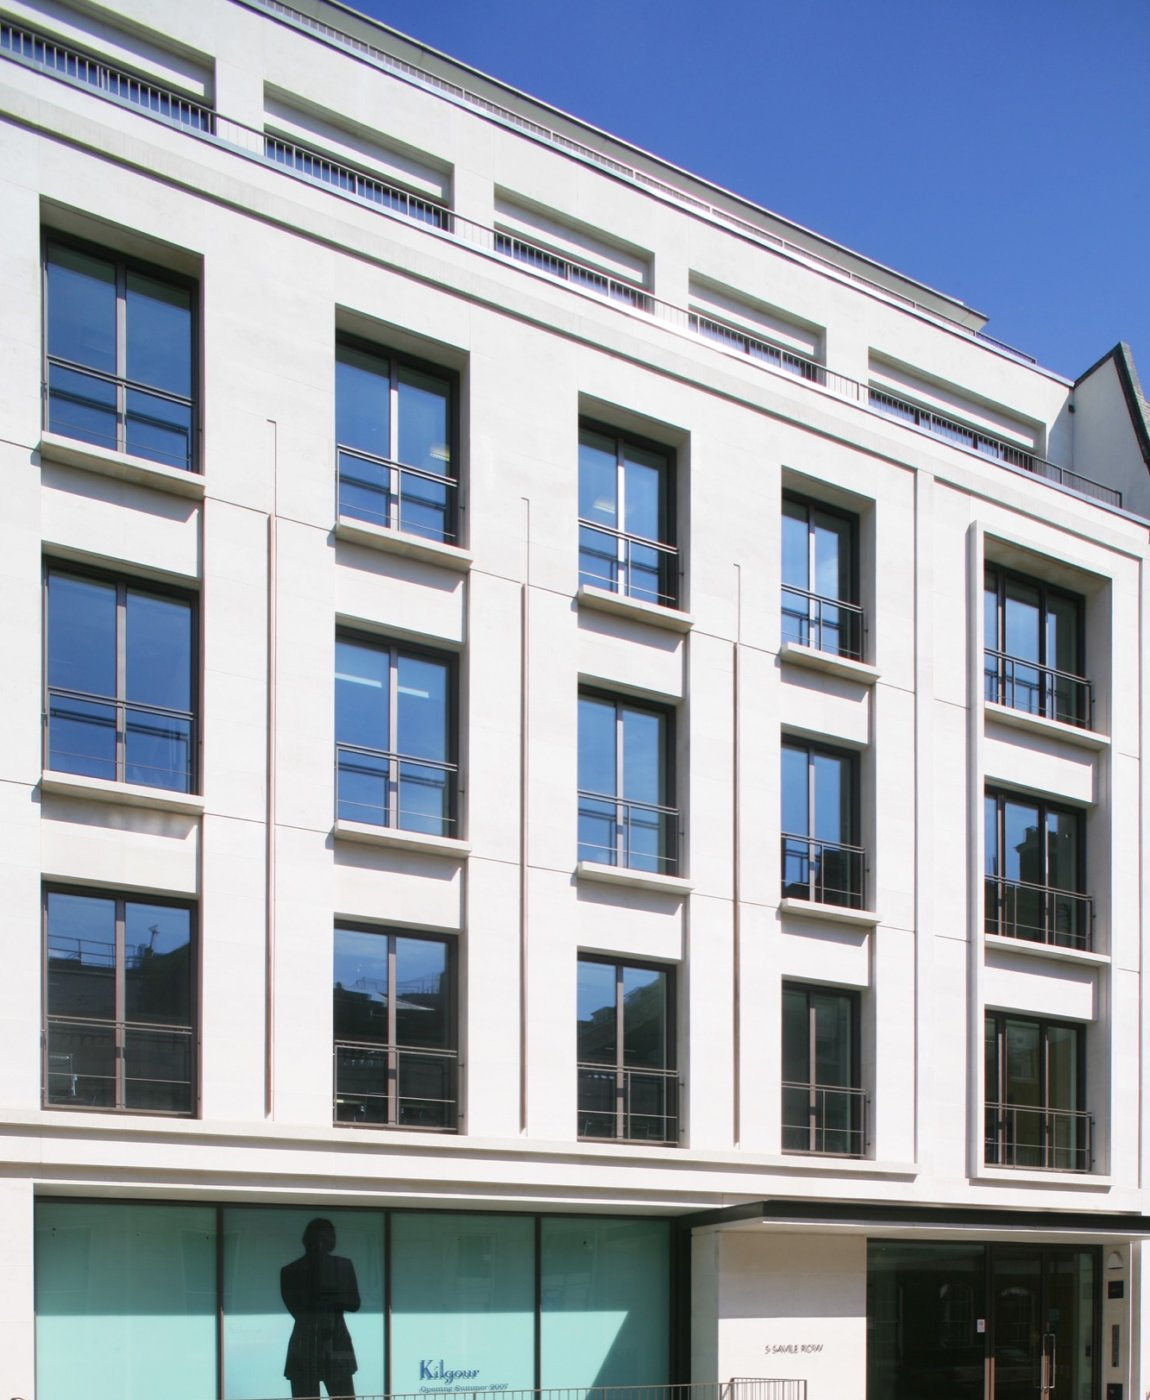 Melrose House, 5 Savile Row, W1